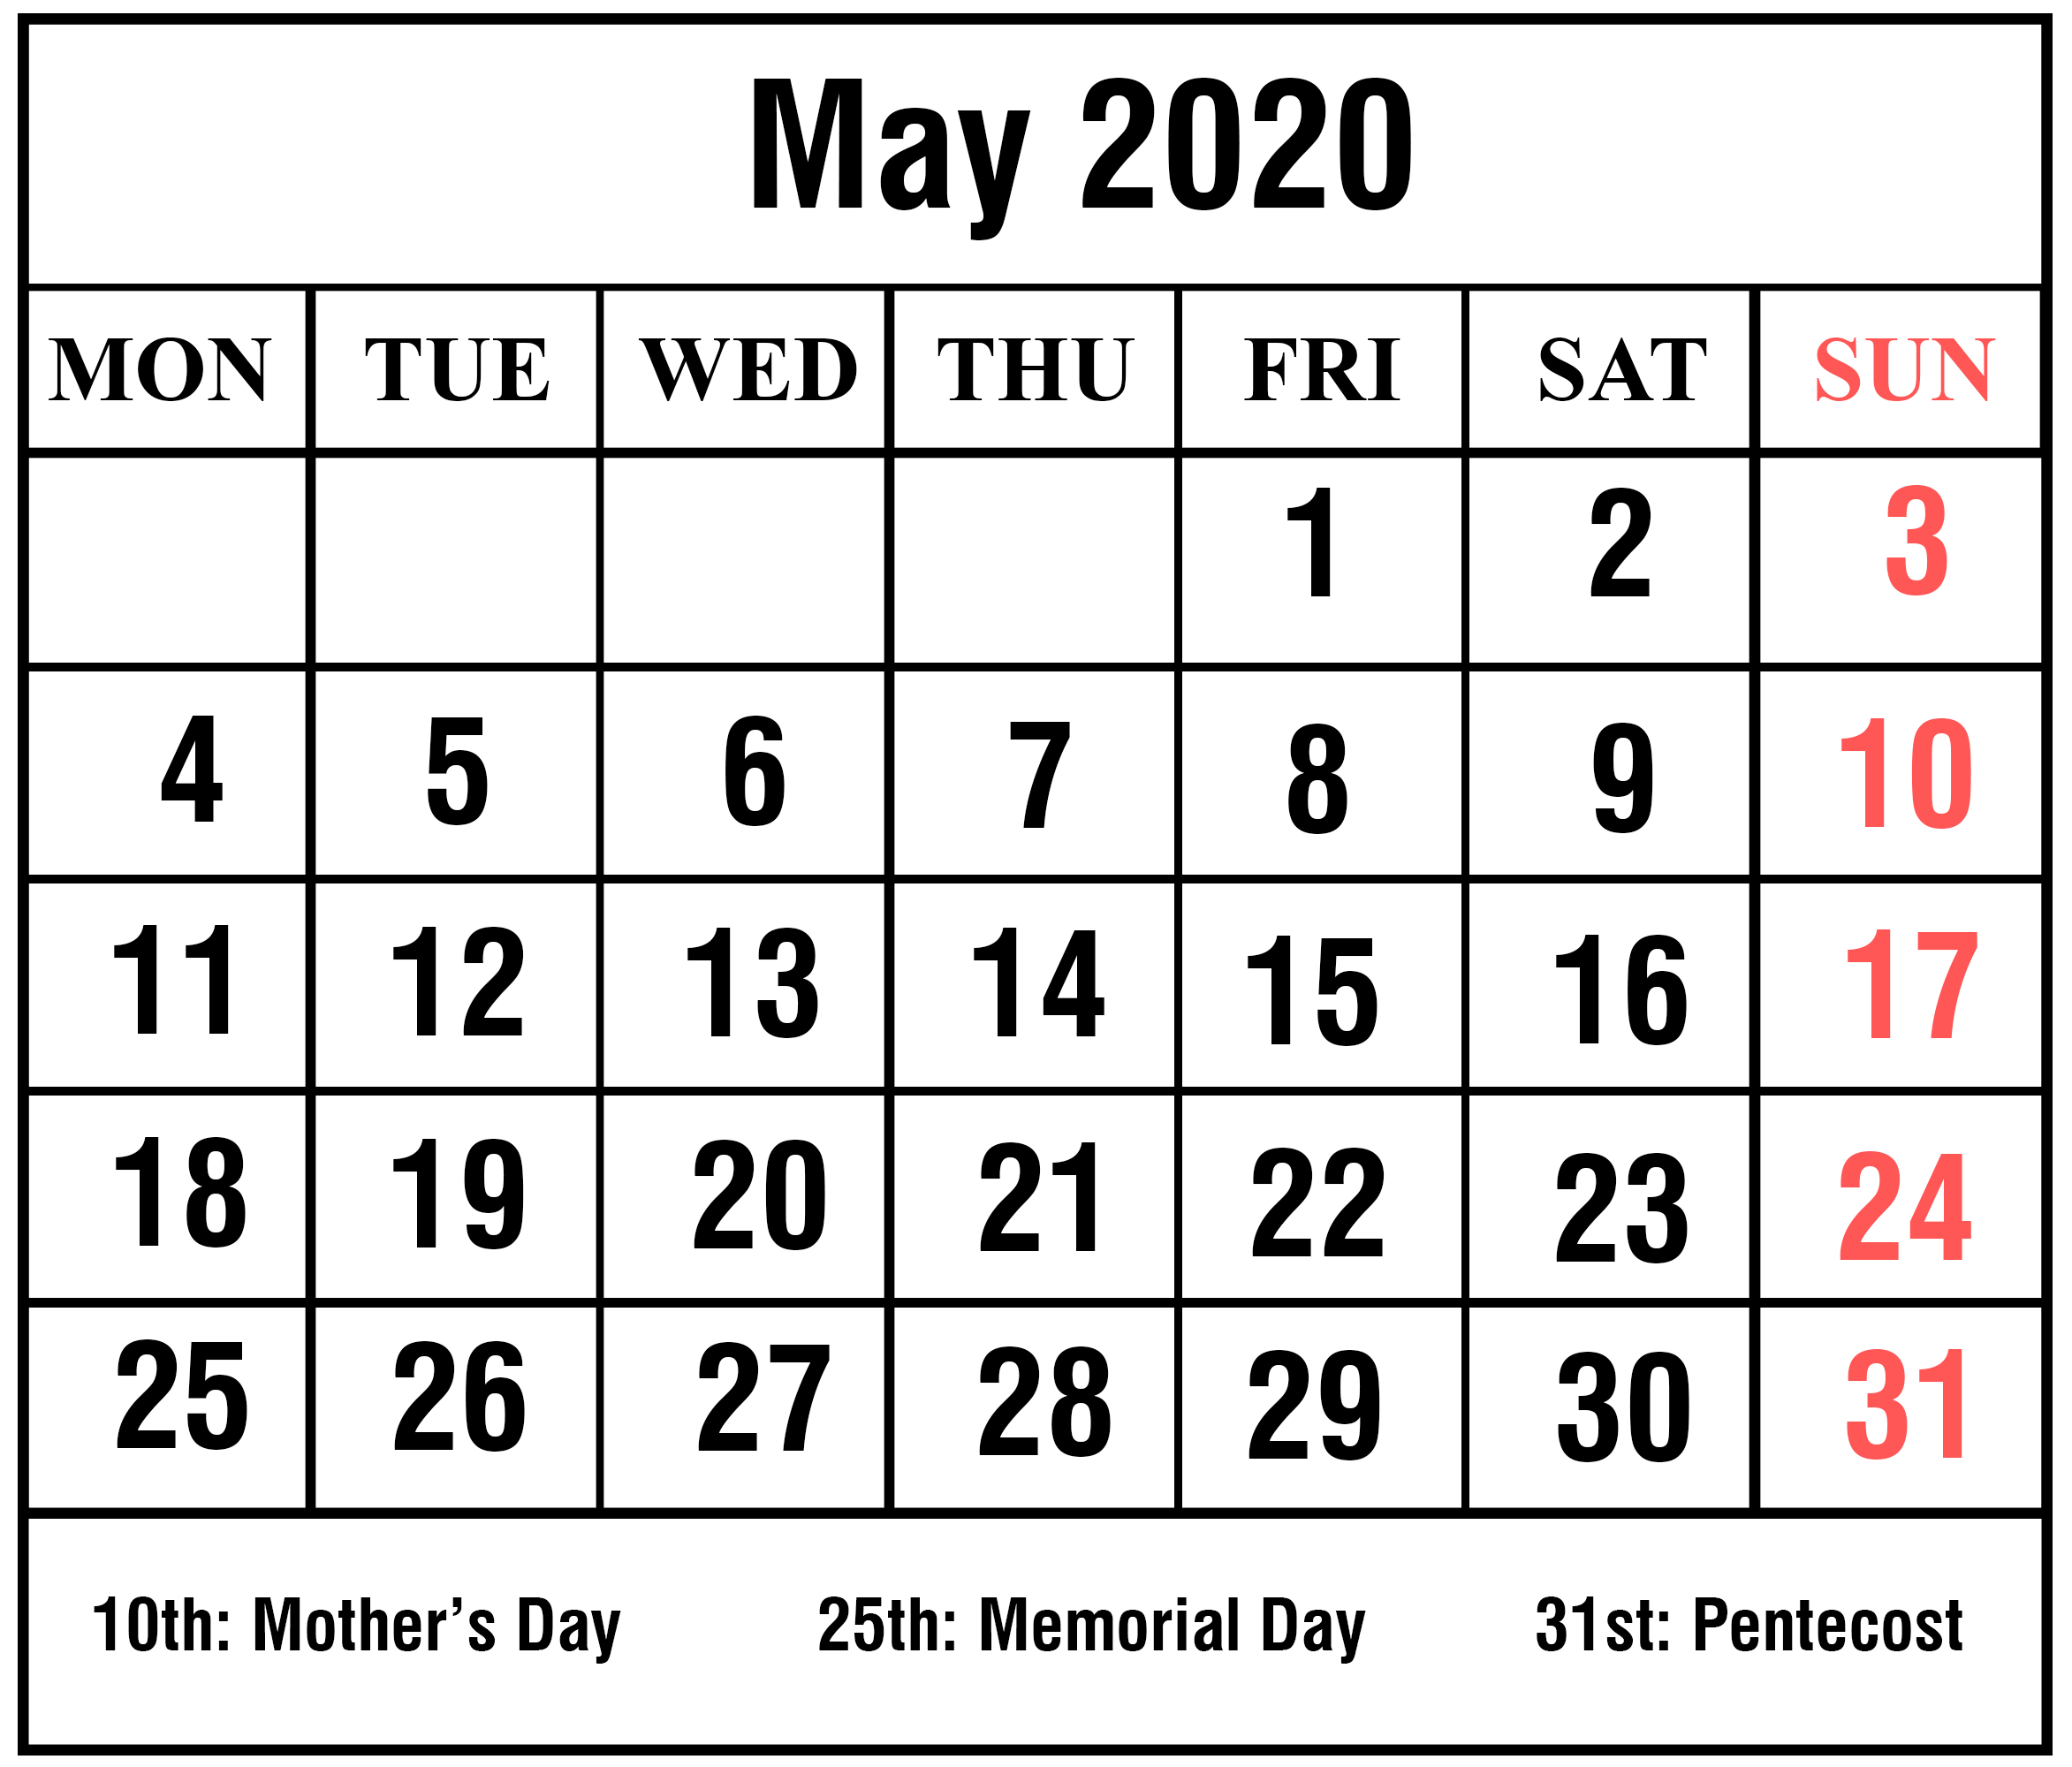 May 2020 Moon Calendar Template with Holidays